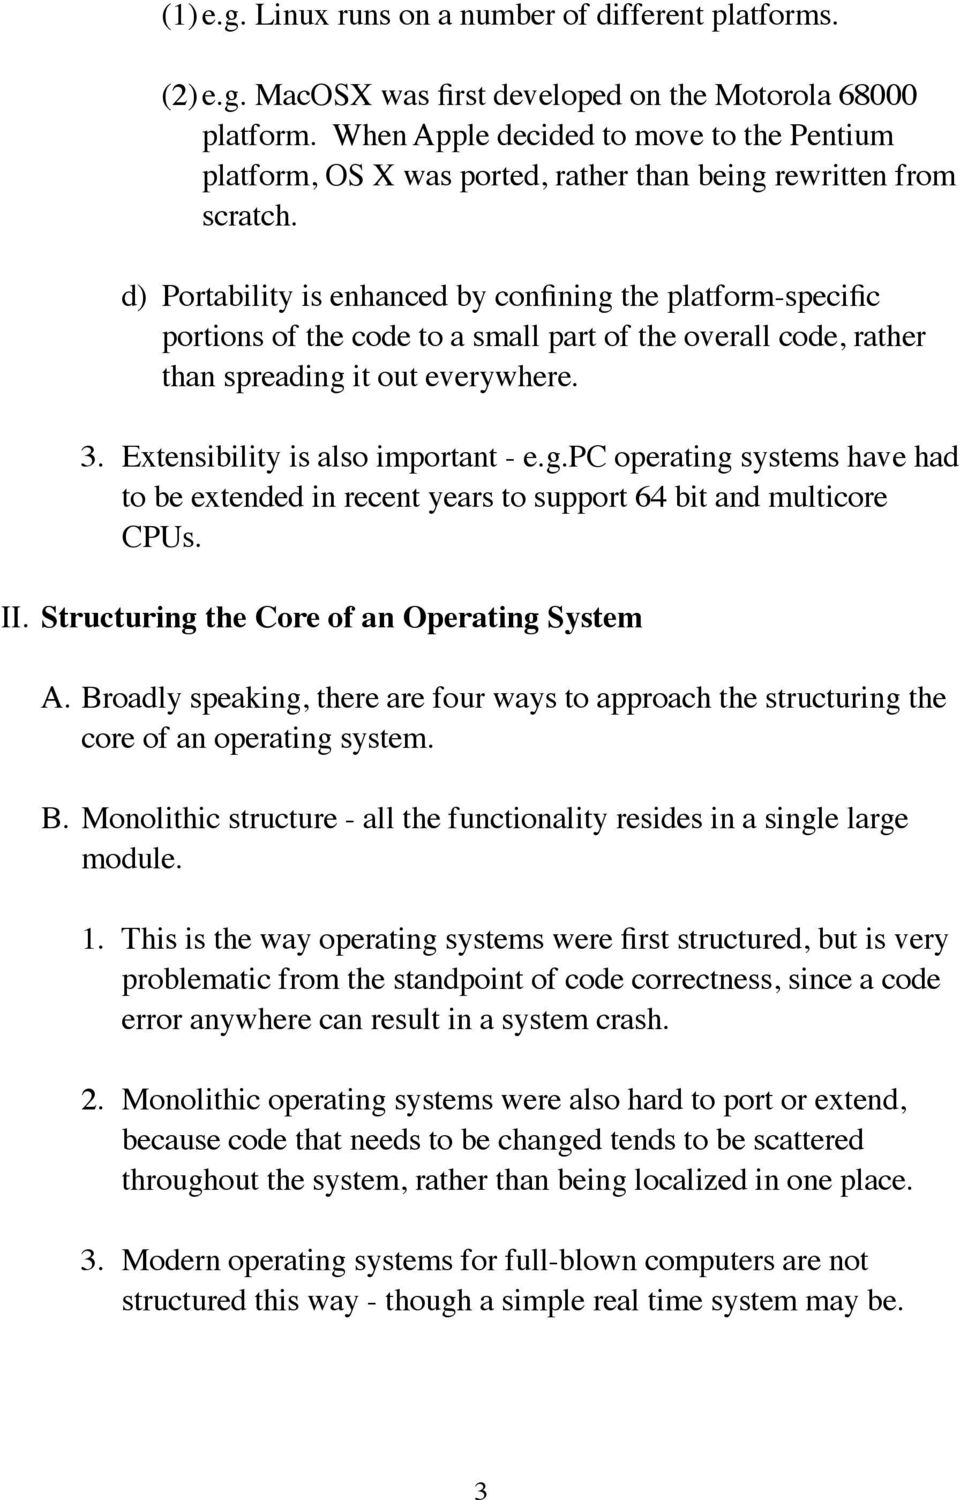 d) Portability is enhanced by confining the platform-specific portions of the code to a small part of the overall code, rather than spreading it out everywhere. 3. Extensibility is also important - e.